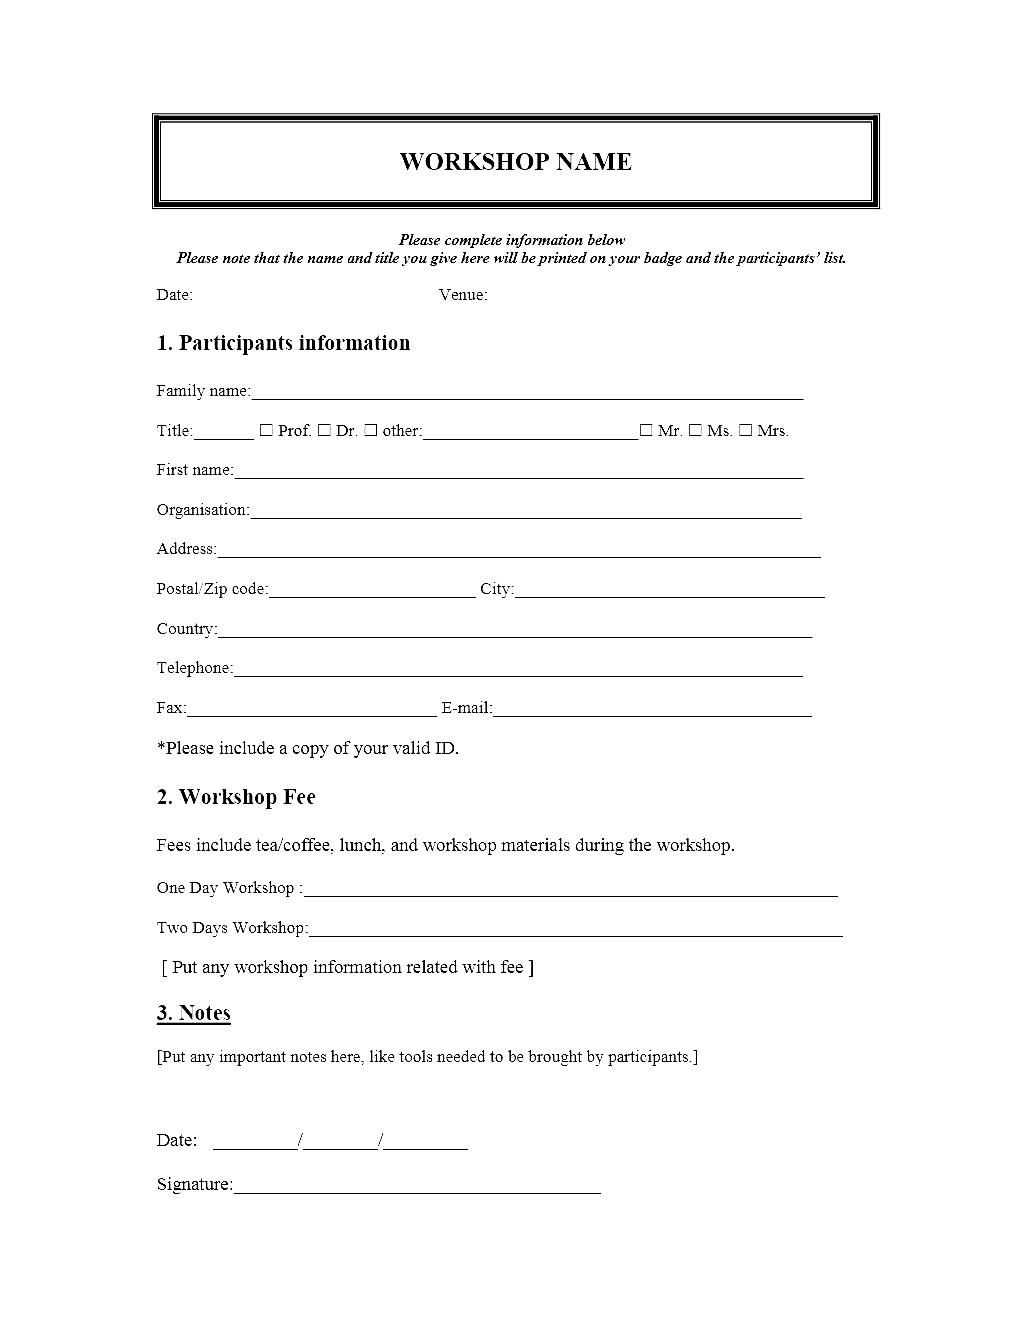 Event Registration Form Template Microsoft Word with Event Survey Template Word